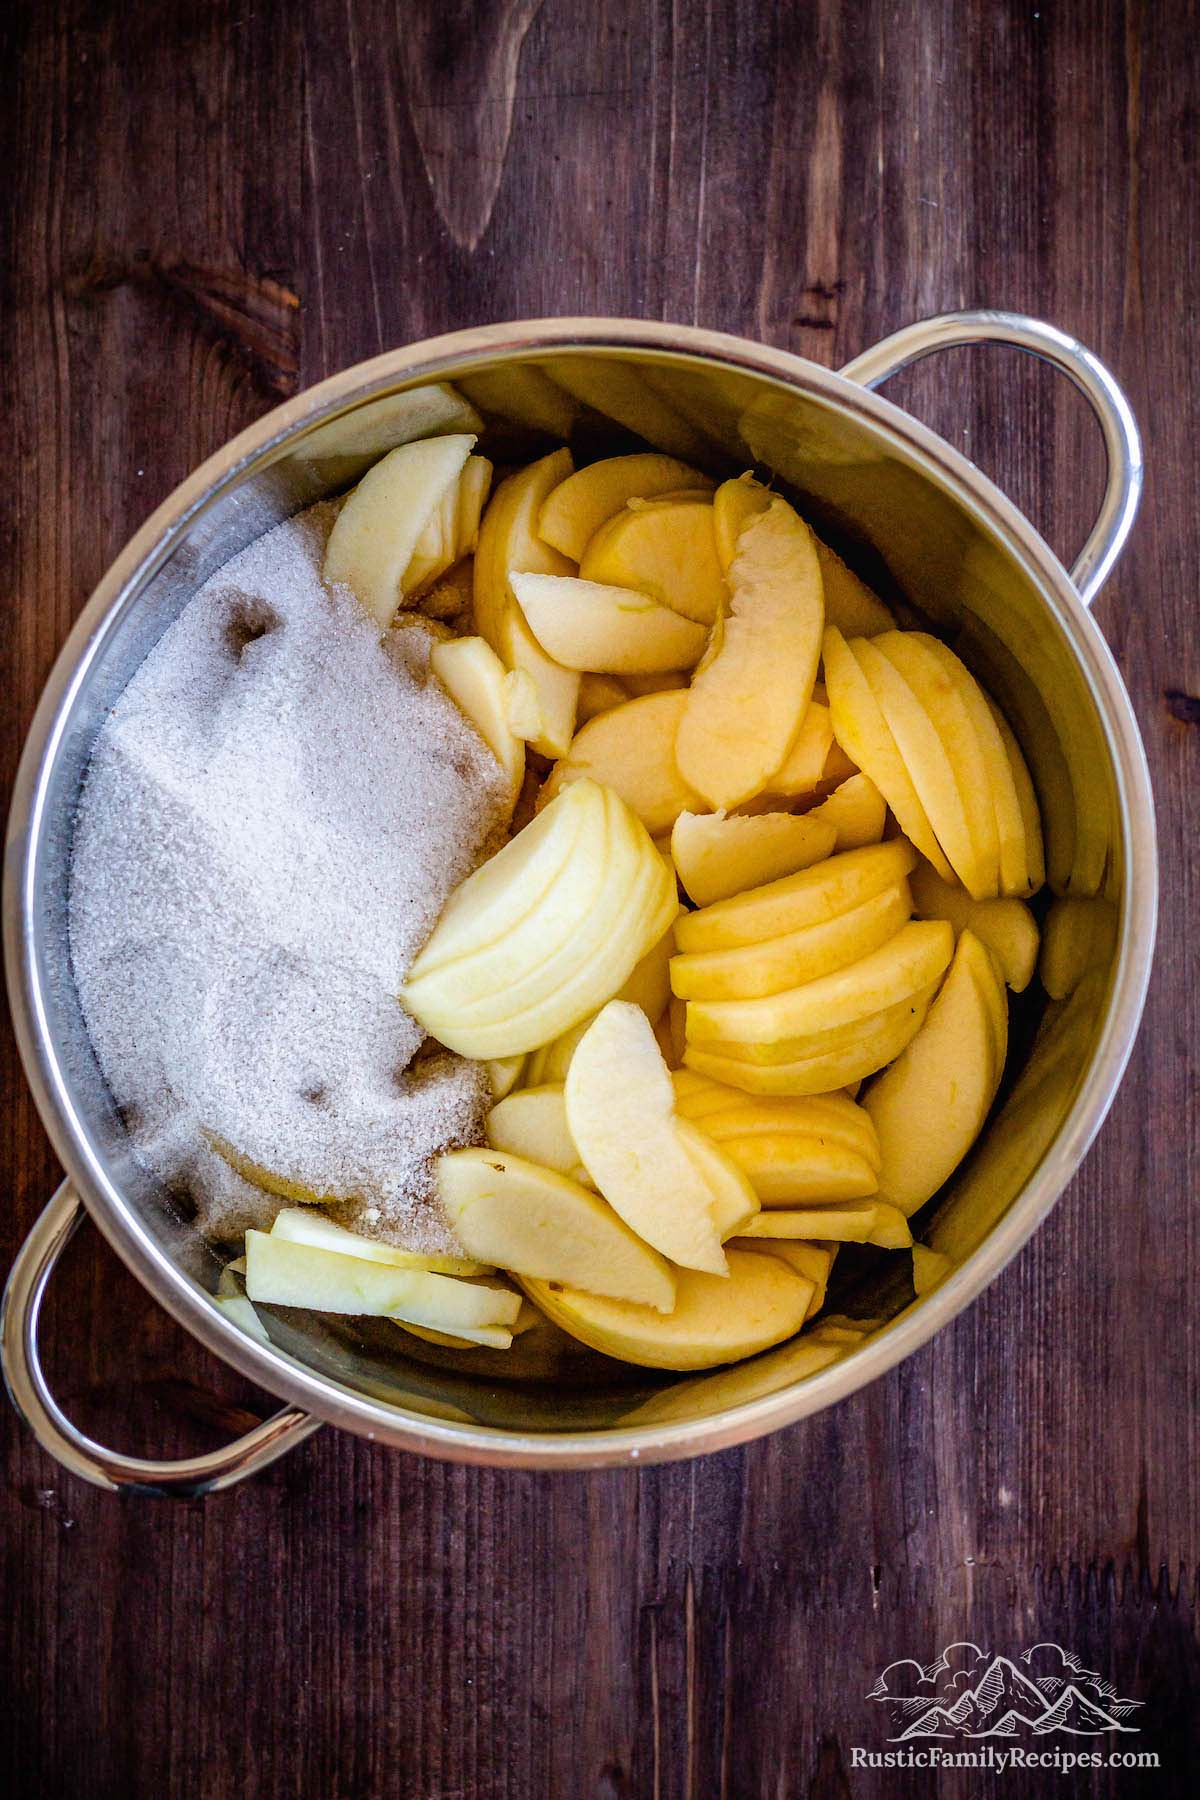 Sliced apples in a pot with cinnamon sugar